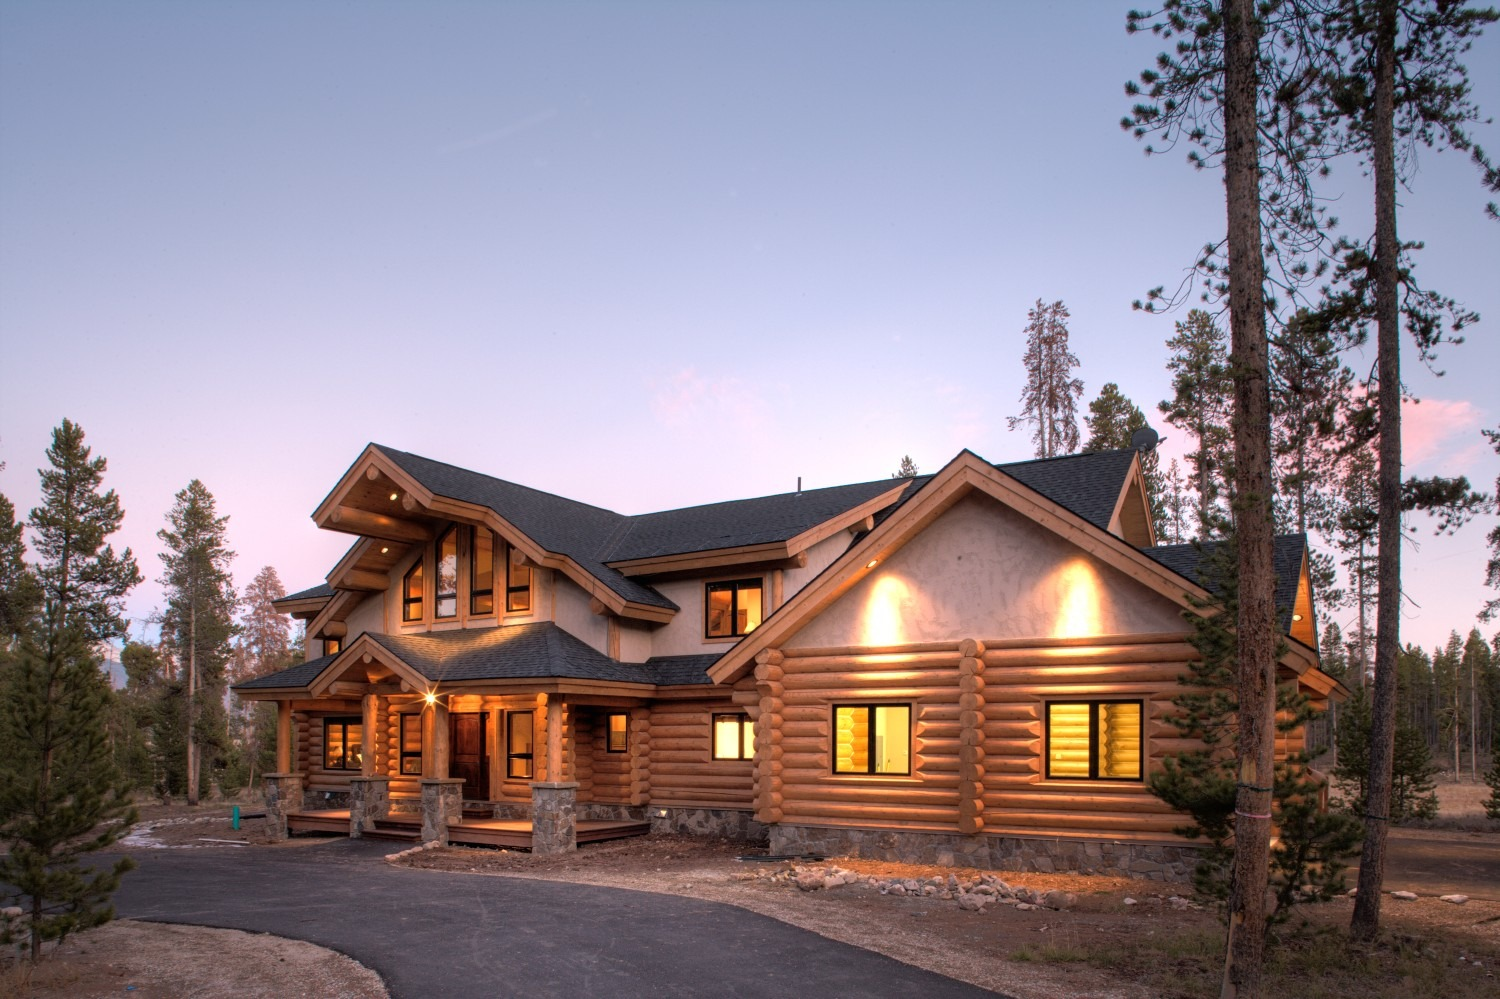 Custom Log Home - Winter Park, Colorado